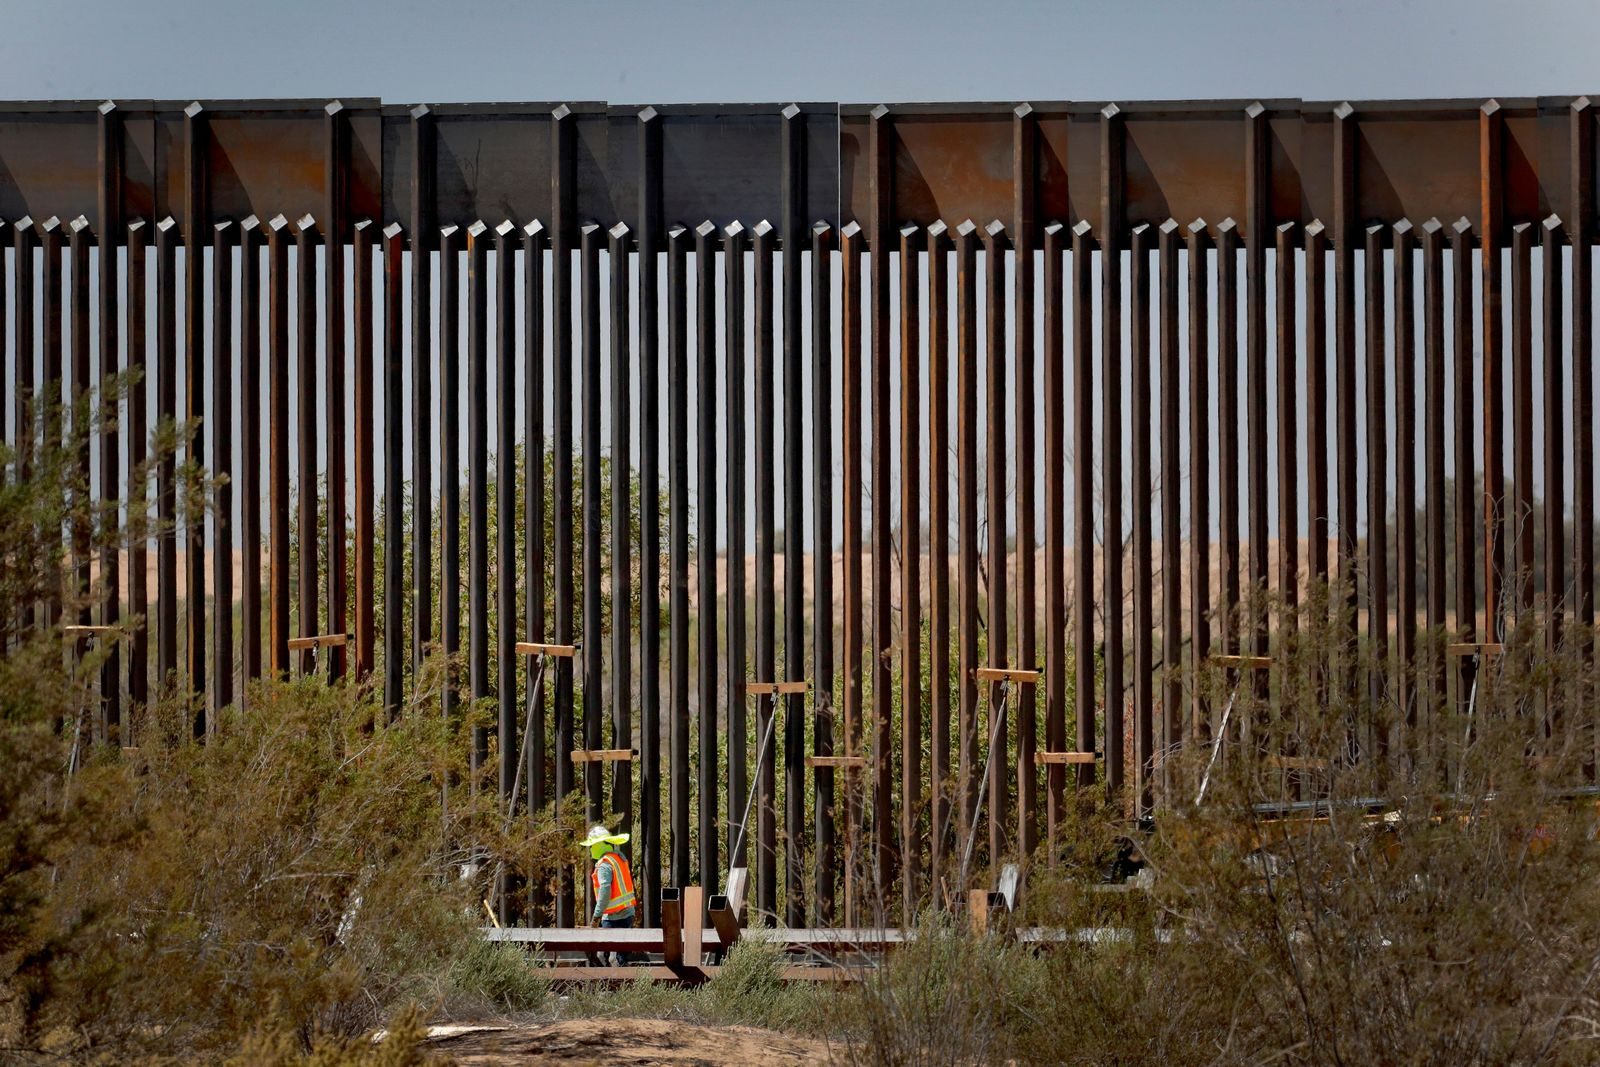 A government contractor walks beside a completed section of Pentagon-funded border wall along the Colorado River, Tuesday, Sept. 10, 2019 in Yuma, Ariz. The 30-foot high wall replaces a five-mile section of Normandy barrier and post-n-beam fencing along the the International border that separates Mexico and the United States. Construction began as federal officials revealed a list of Defense Department projects to be cut to pay for President Donald Trump's wall. (AP Photo/Matt York)